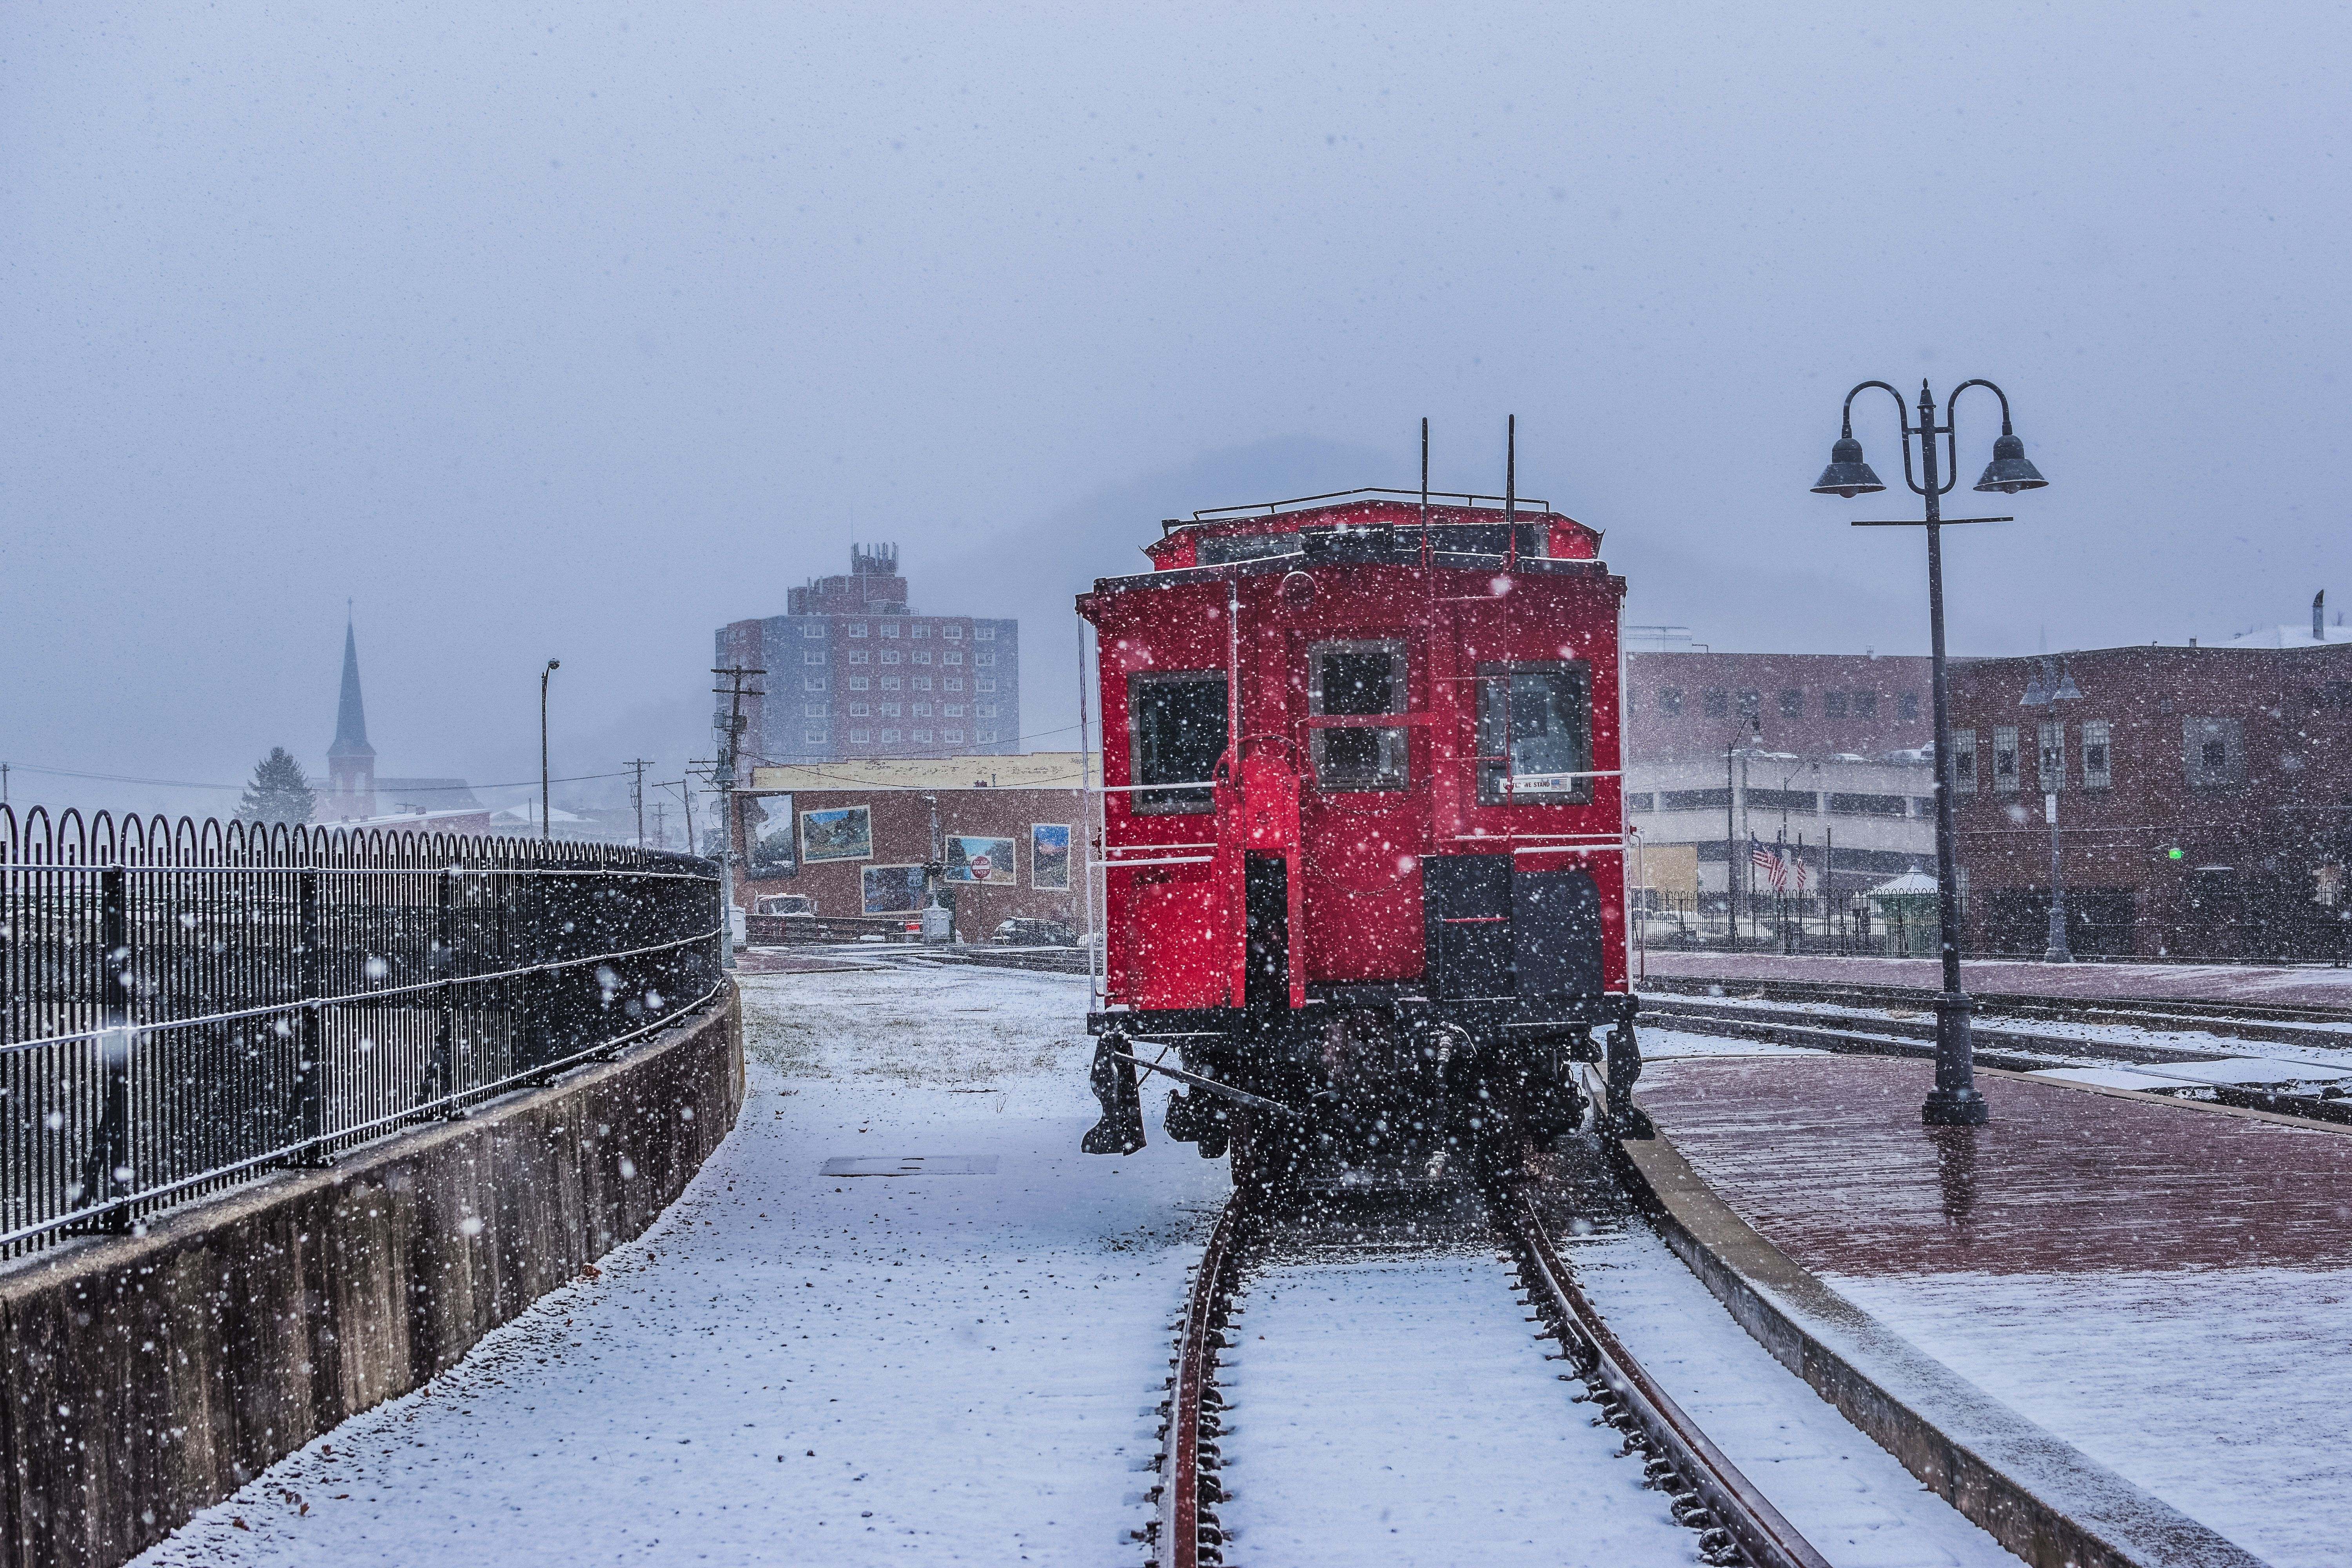 Murder Mystery Train in the snow